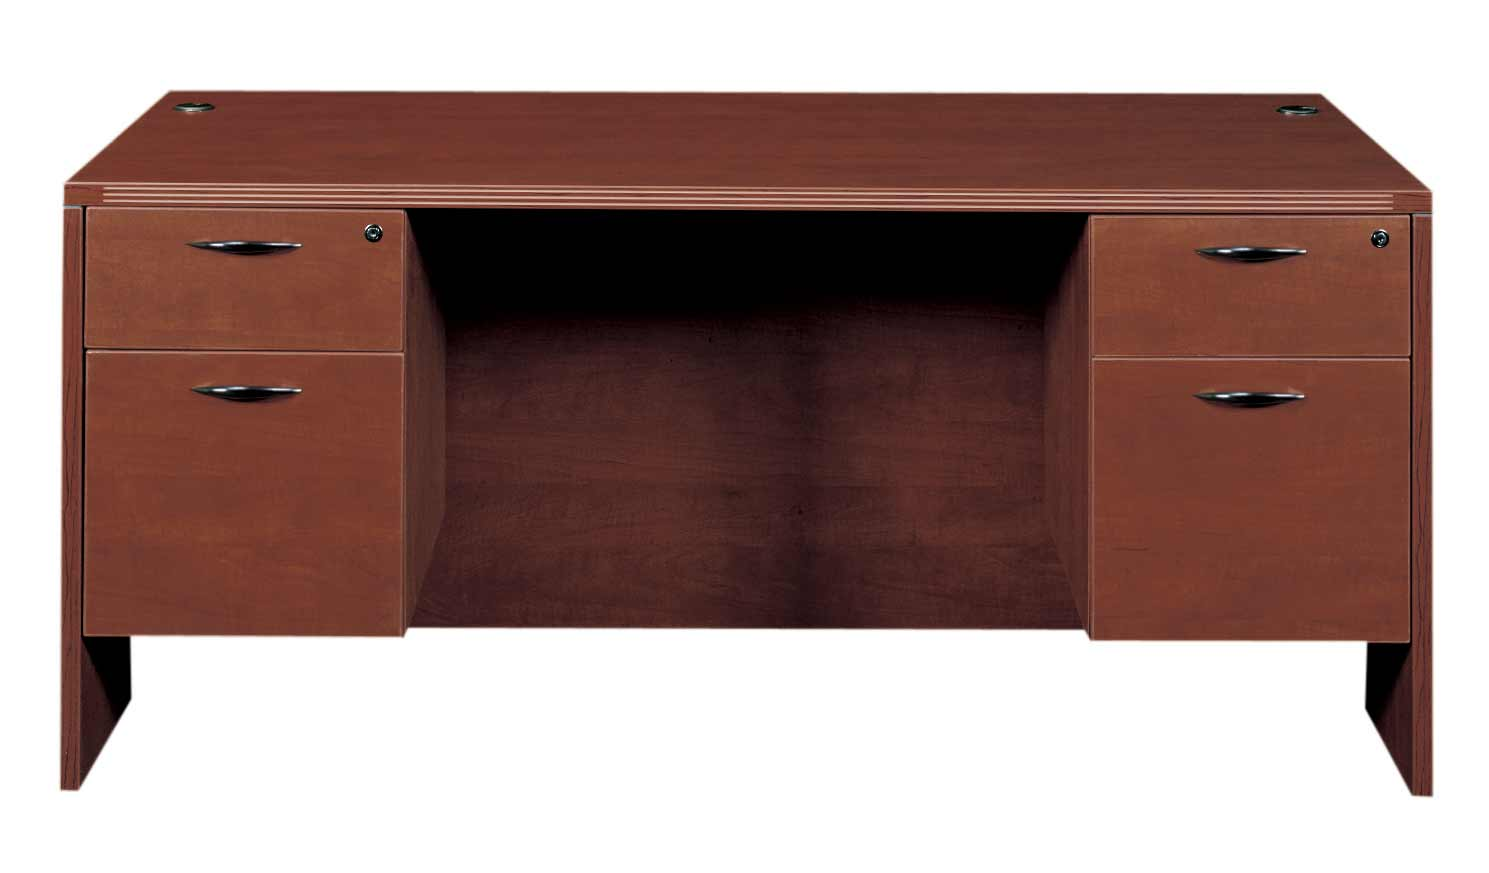 CherryMan Amber Double Pedestal Office Desk